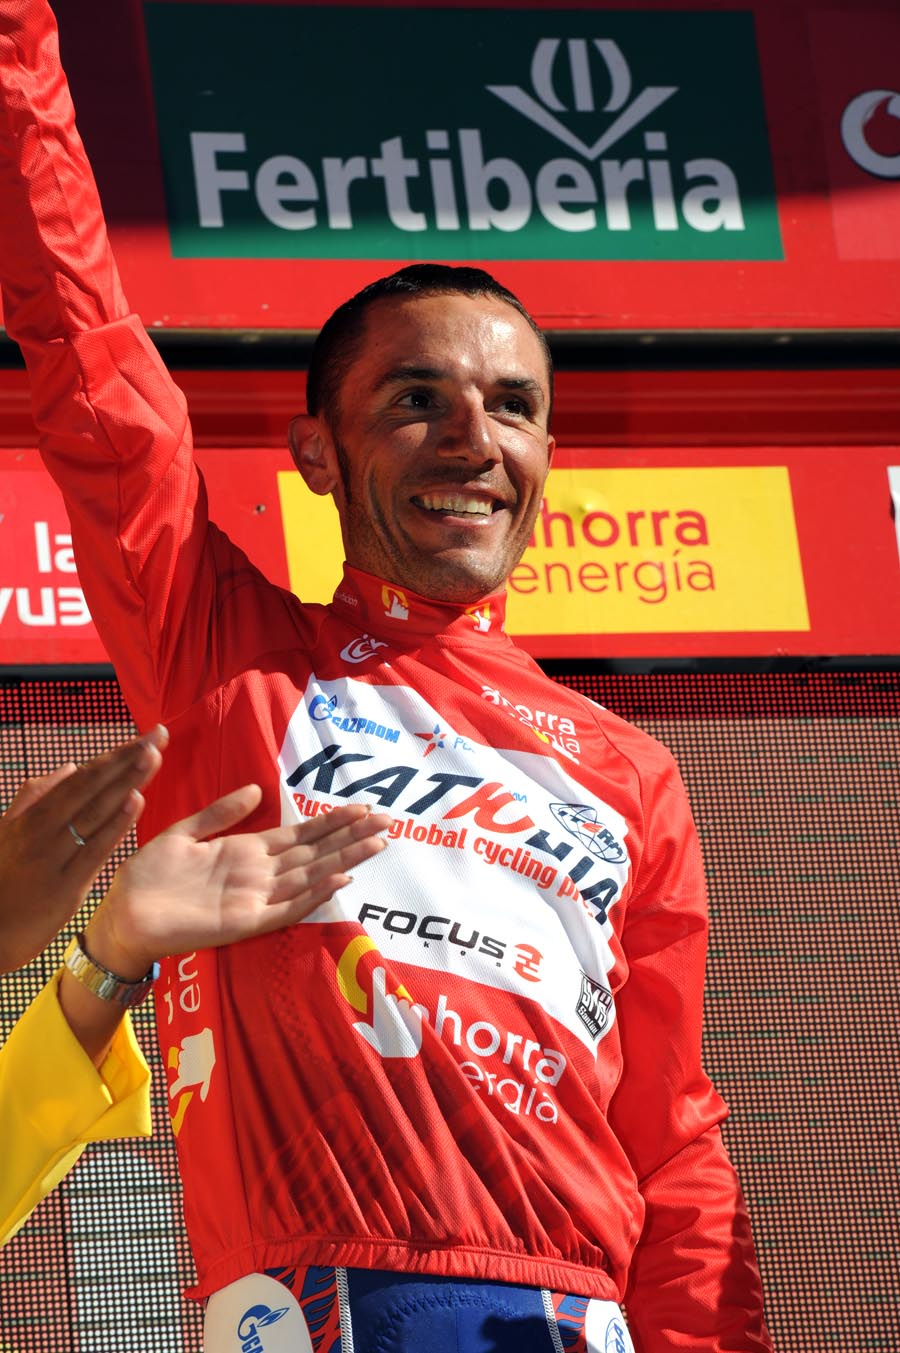 Joaquin Rodriguez in overall lead, Vuelta a Espana 2011, stage eight